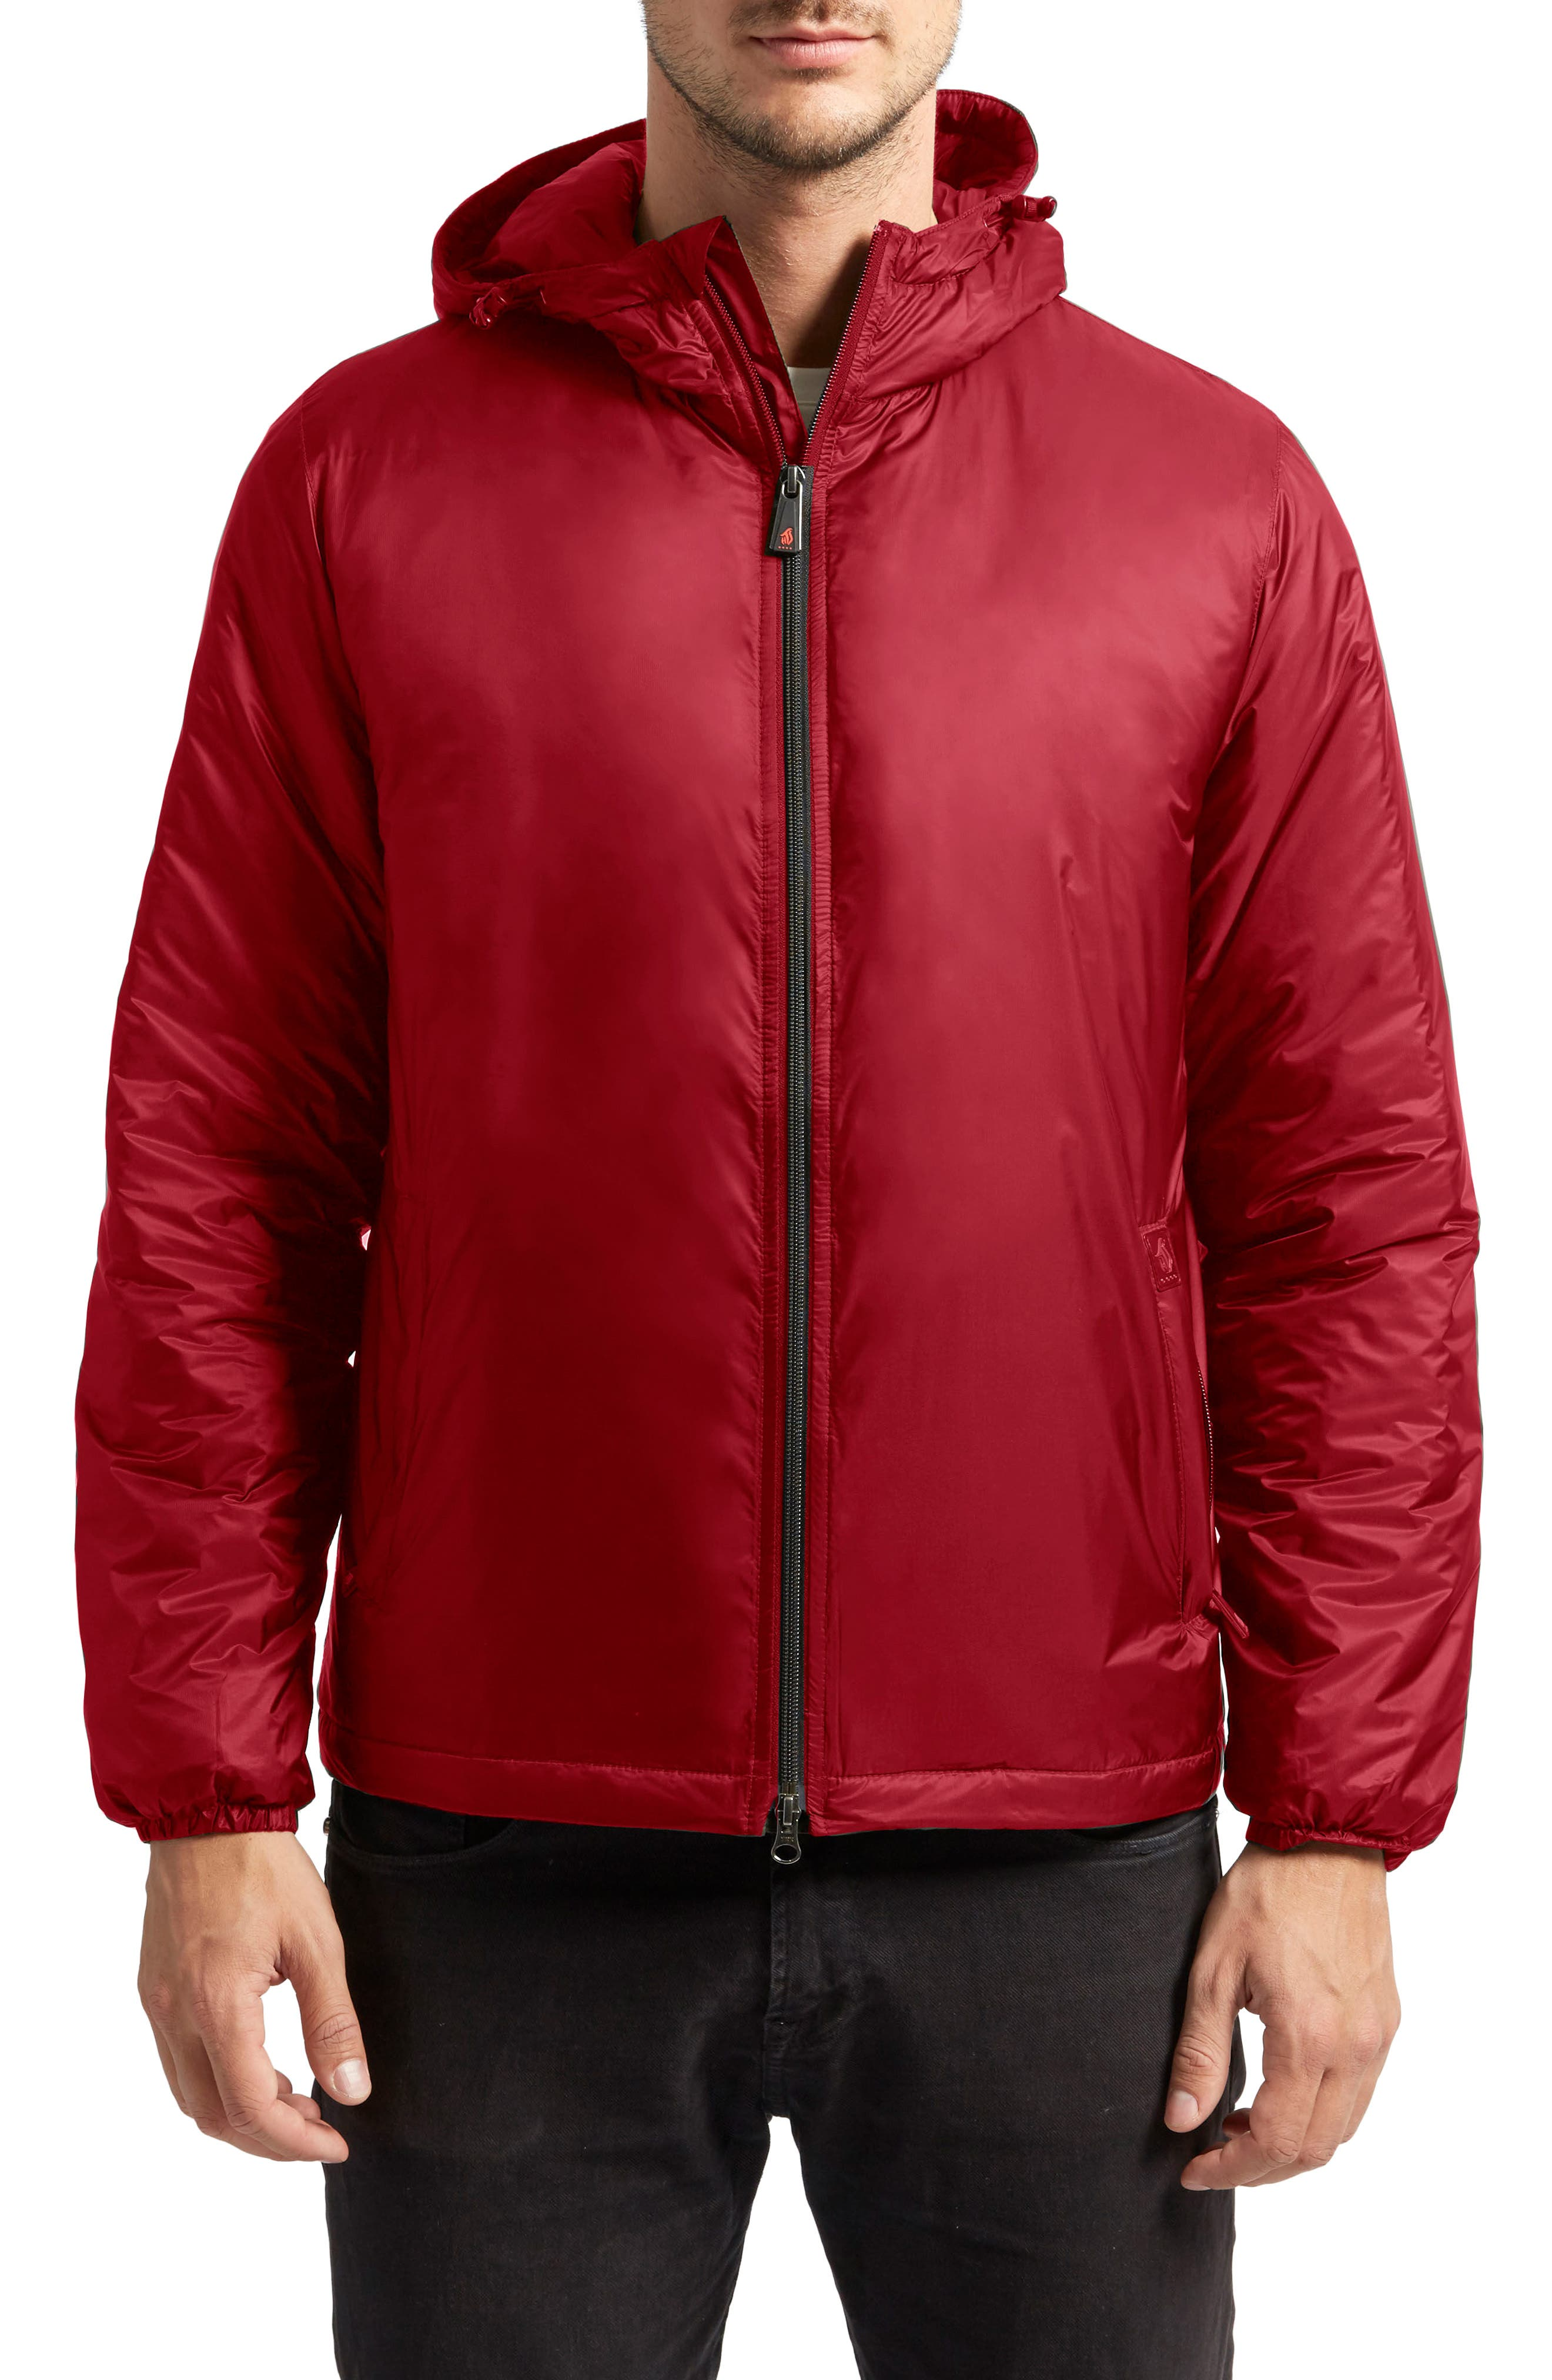 Alternate Image 1 Selected - ThermoLUXE® Arvada Packable Heat System Hooded Jacket